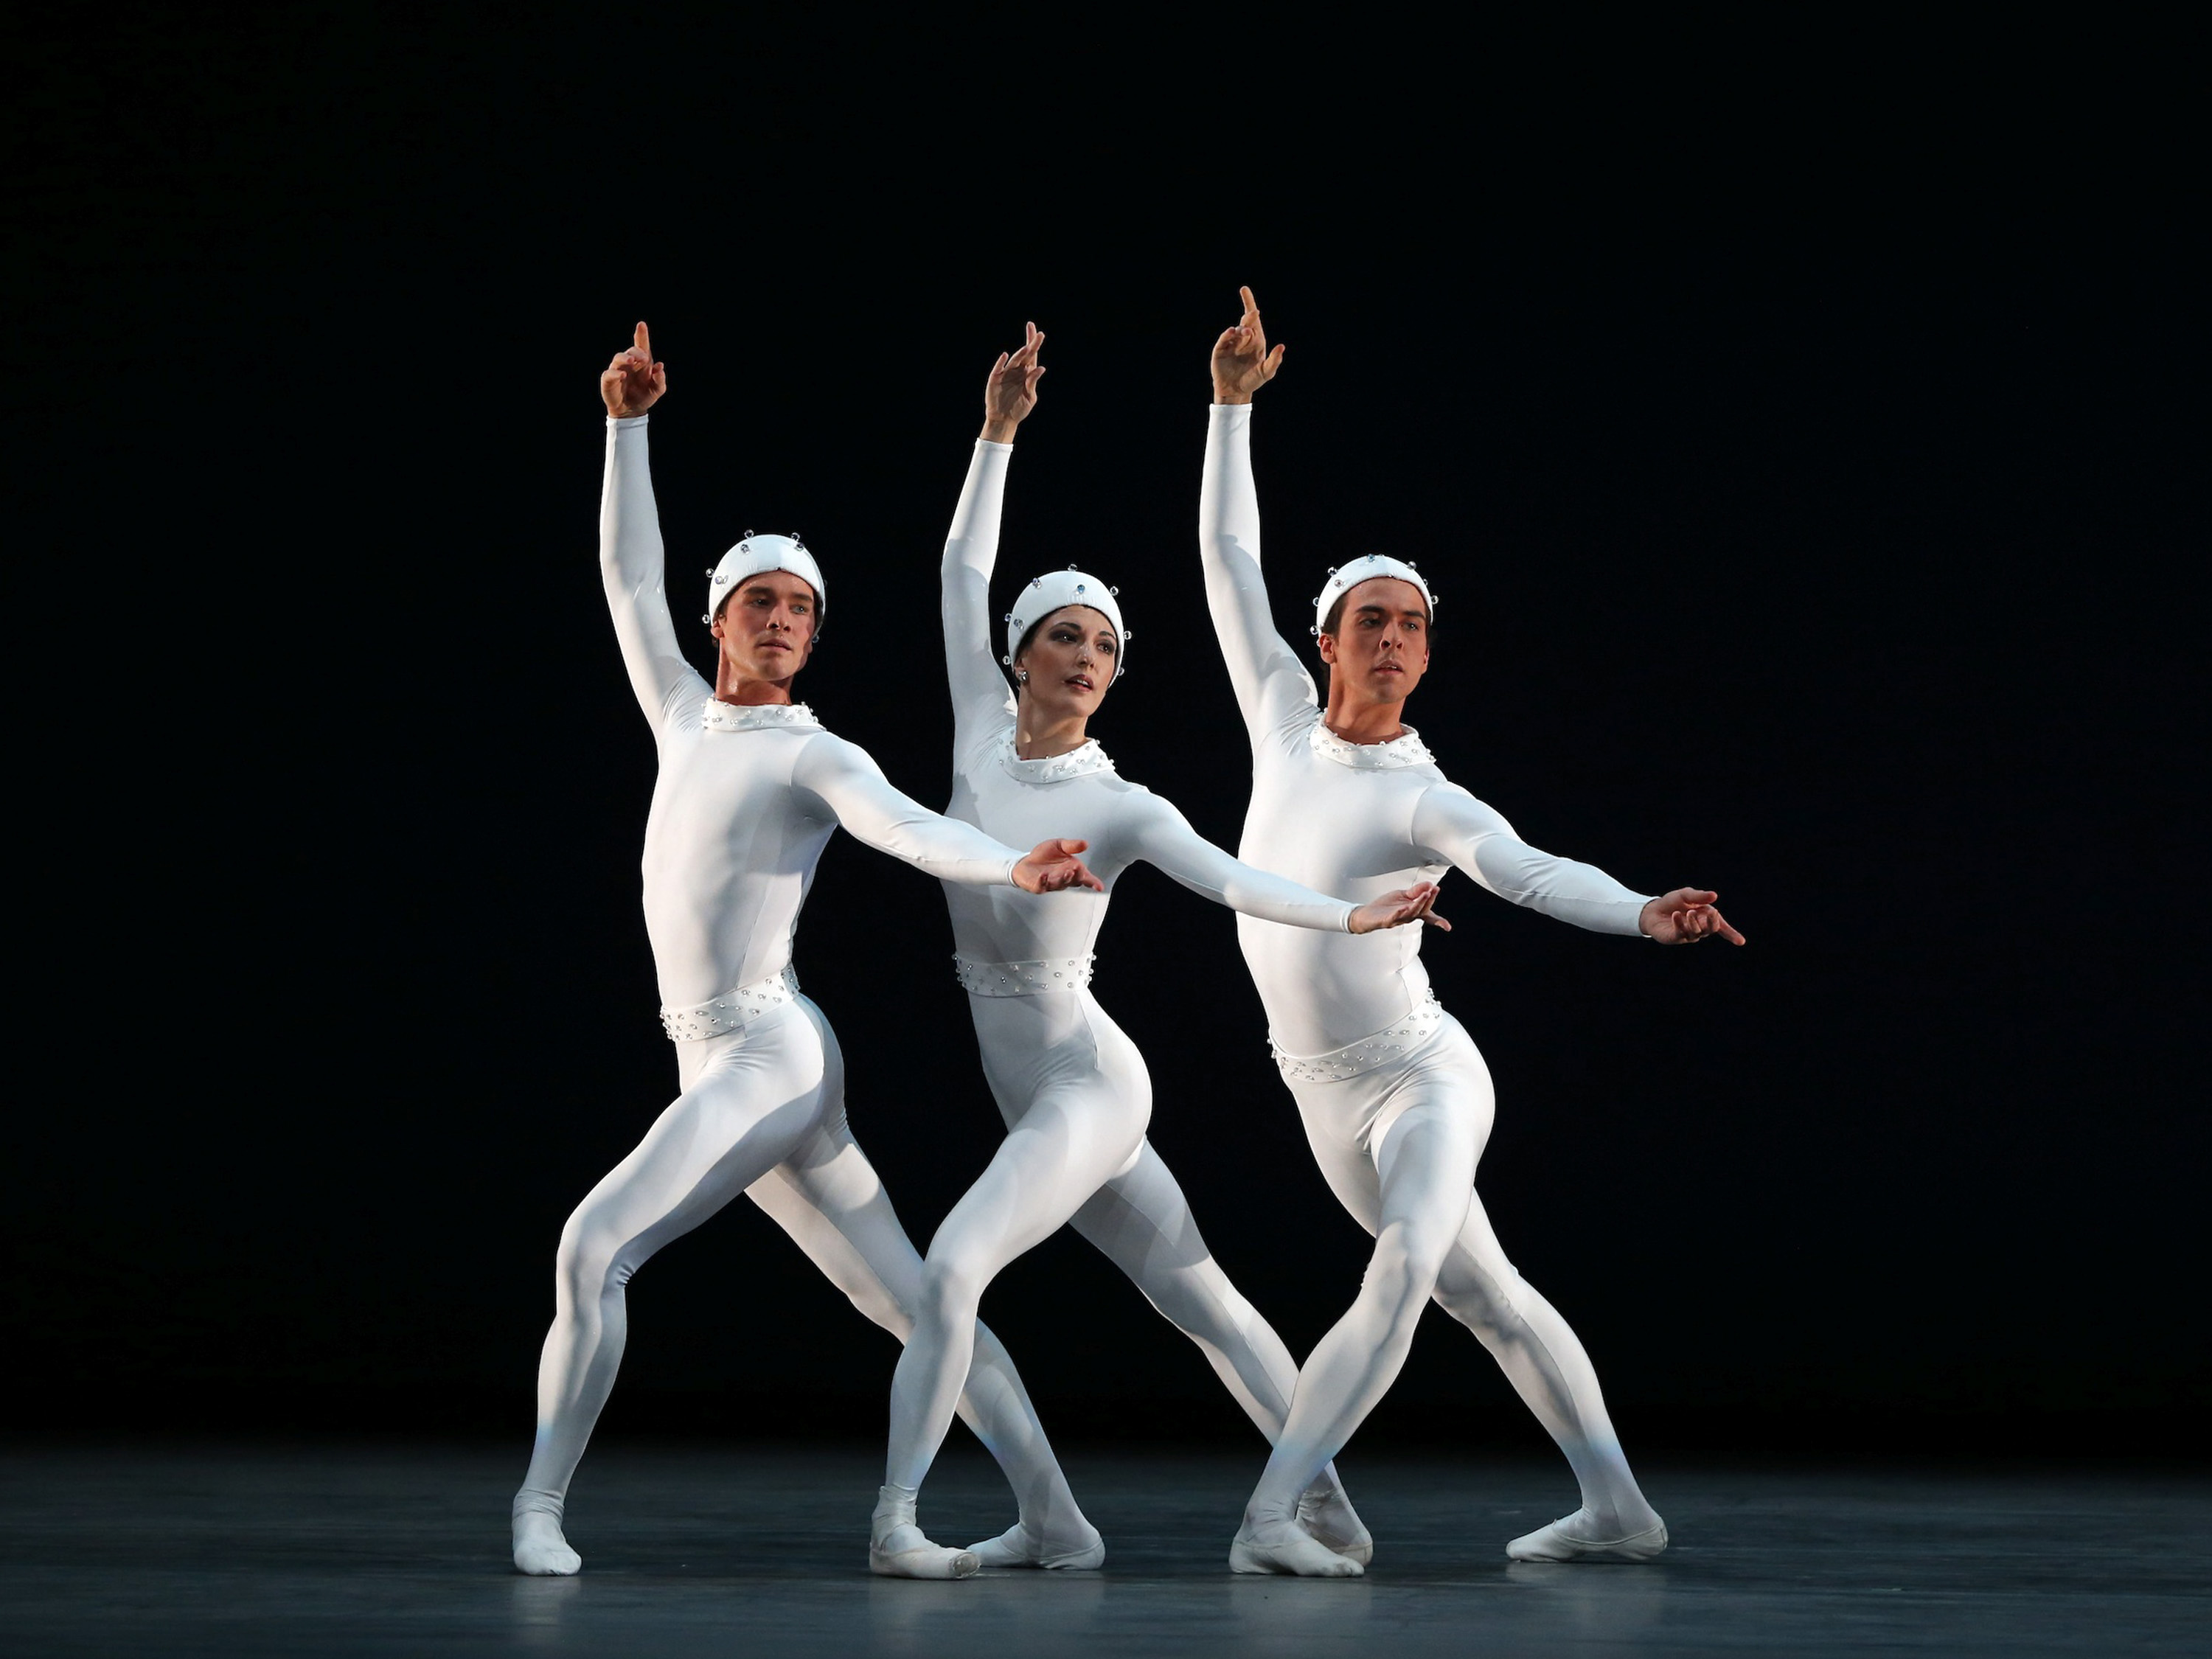 Michele Wiles and Cory Stearns (American Ballet Theatre